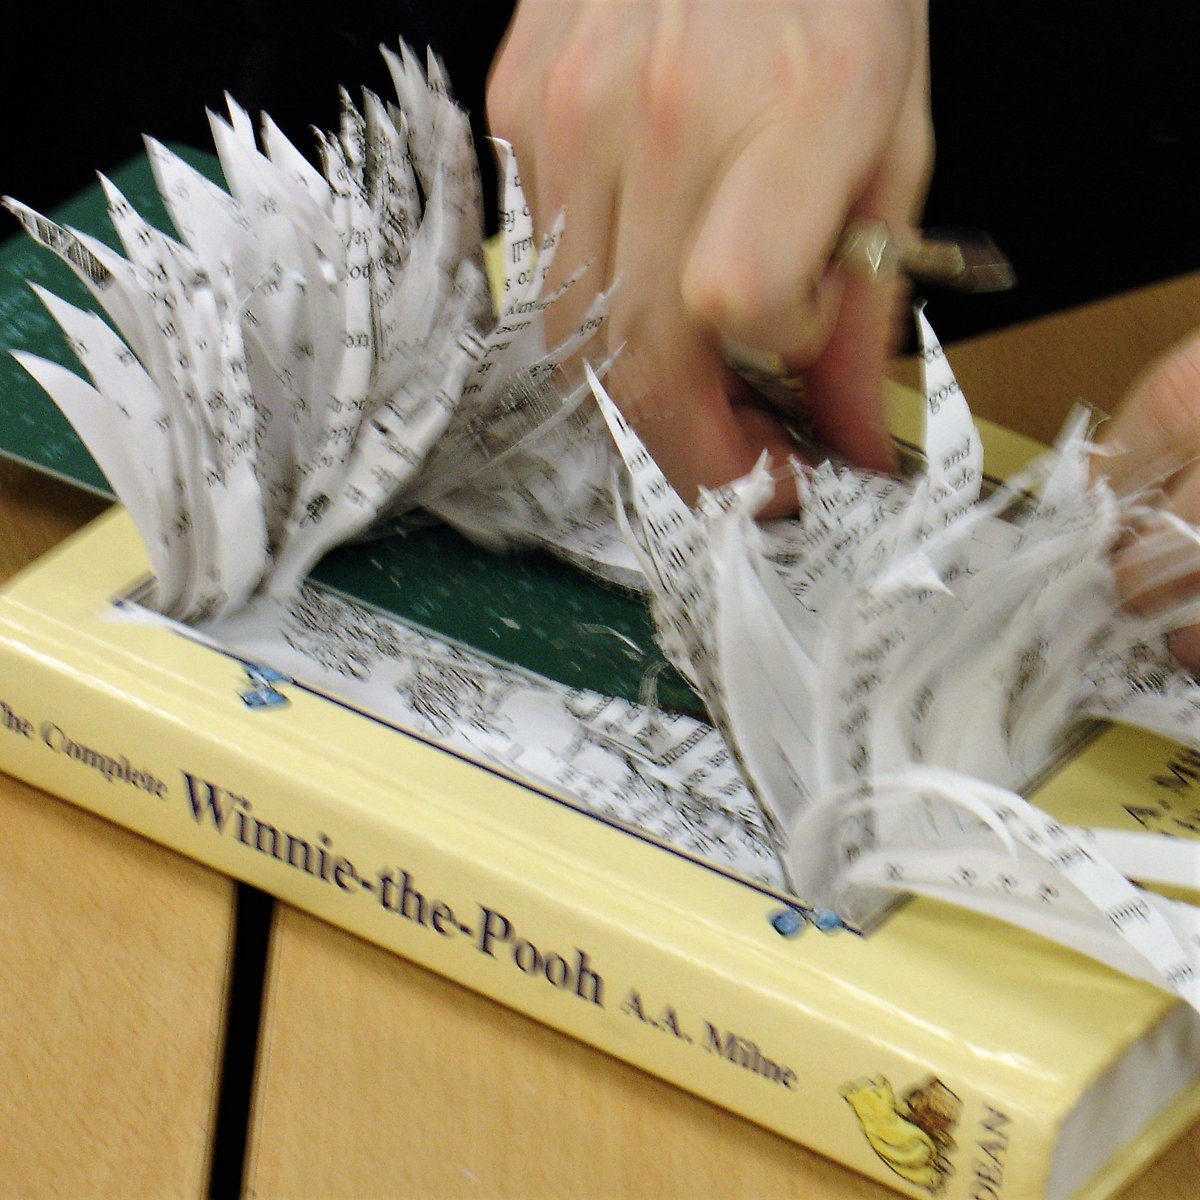 Make your own book sculpture workshop with Isabell Buenz! £25   11-2pm   13th July kirkcudbrightgalleries.org.uk/event/make-a-3…